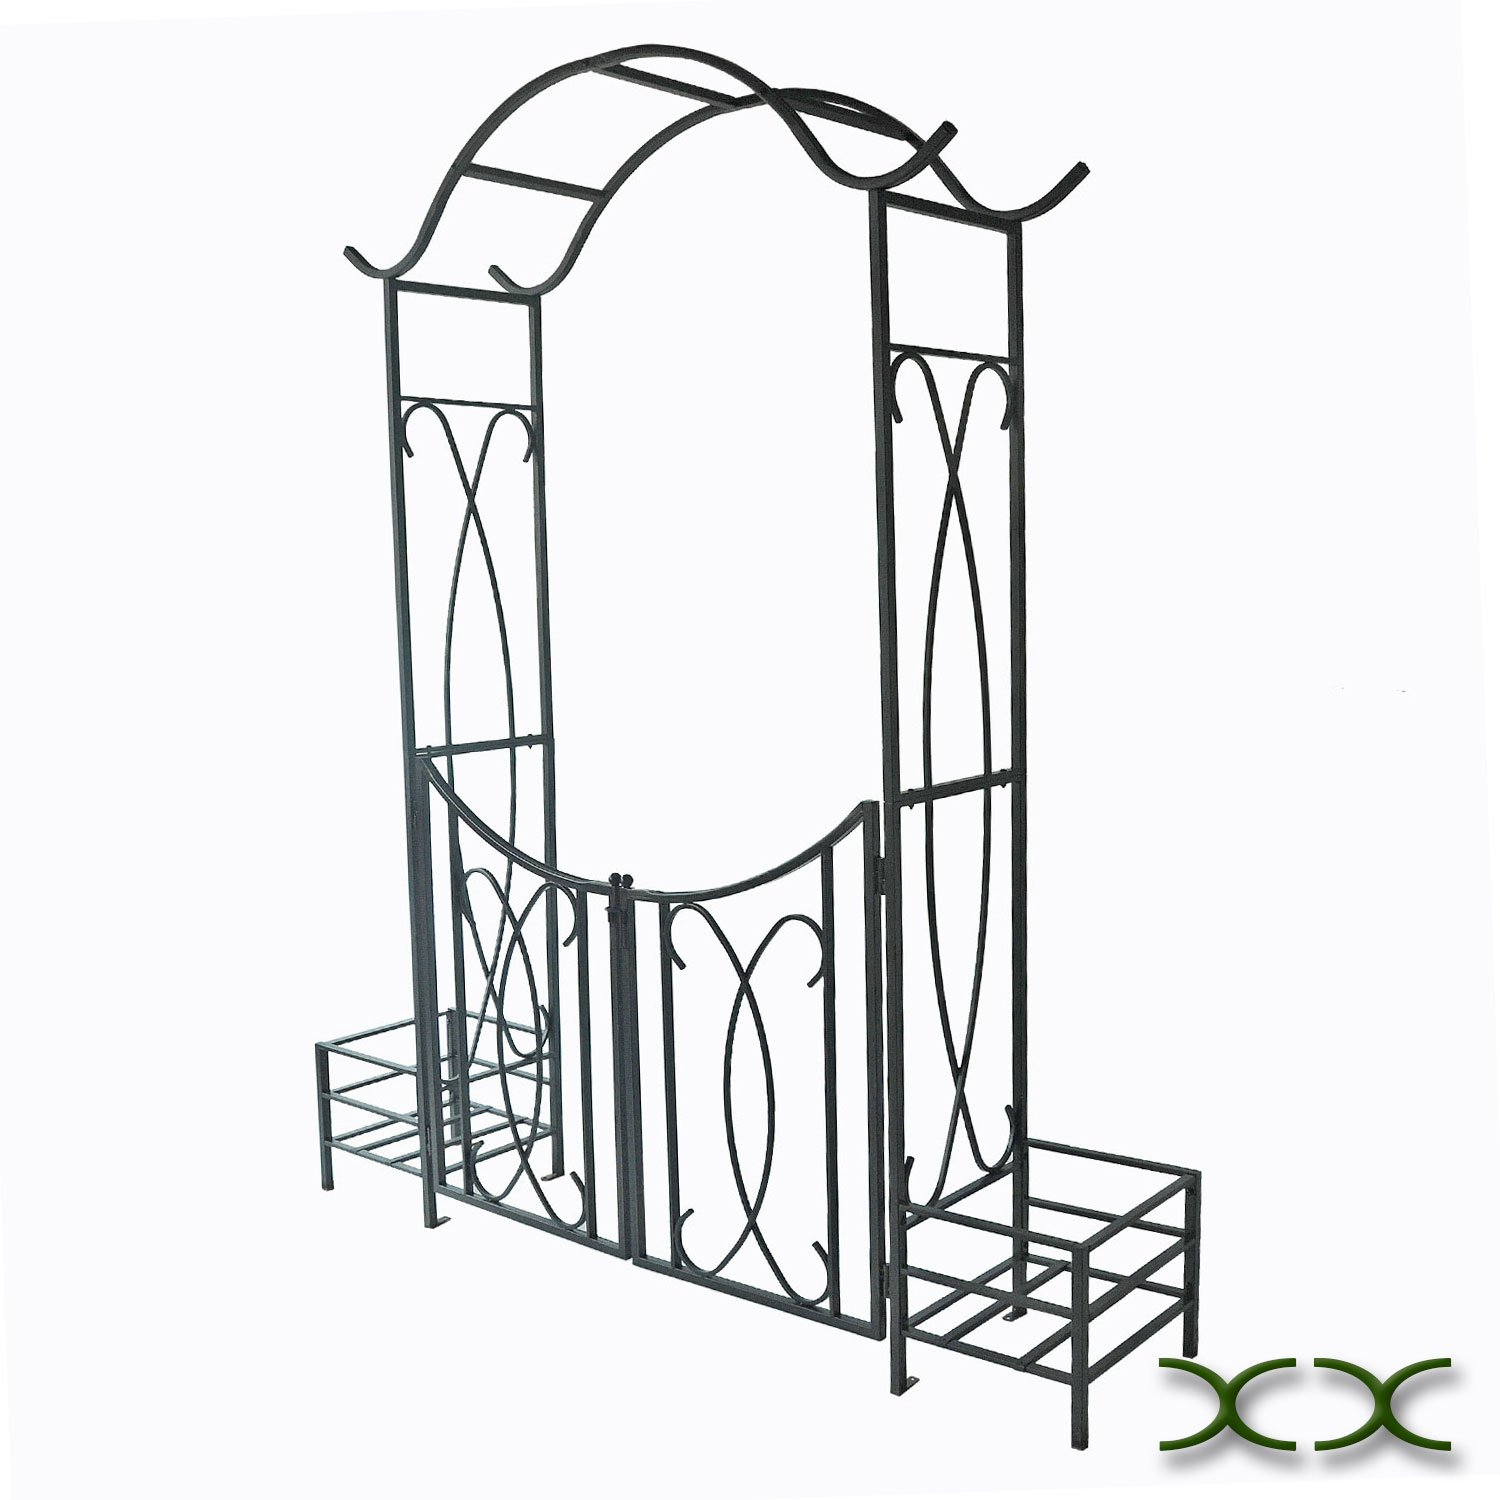 AXXONN Garden Arbor with Gate and Planter Holders